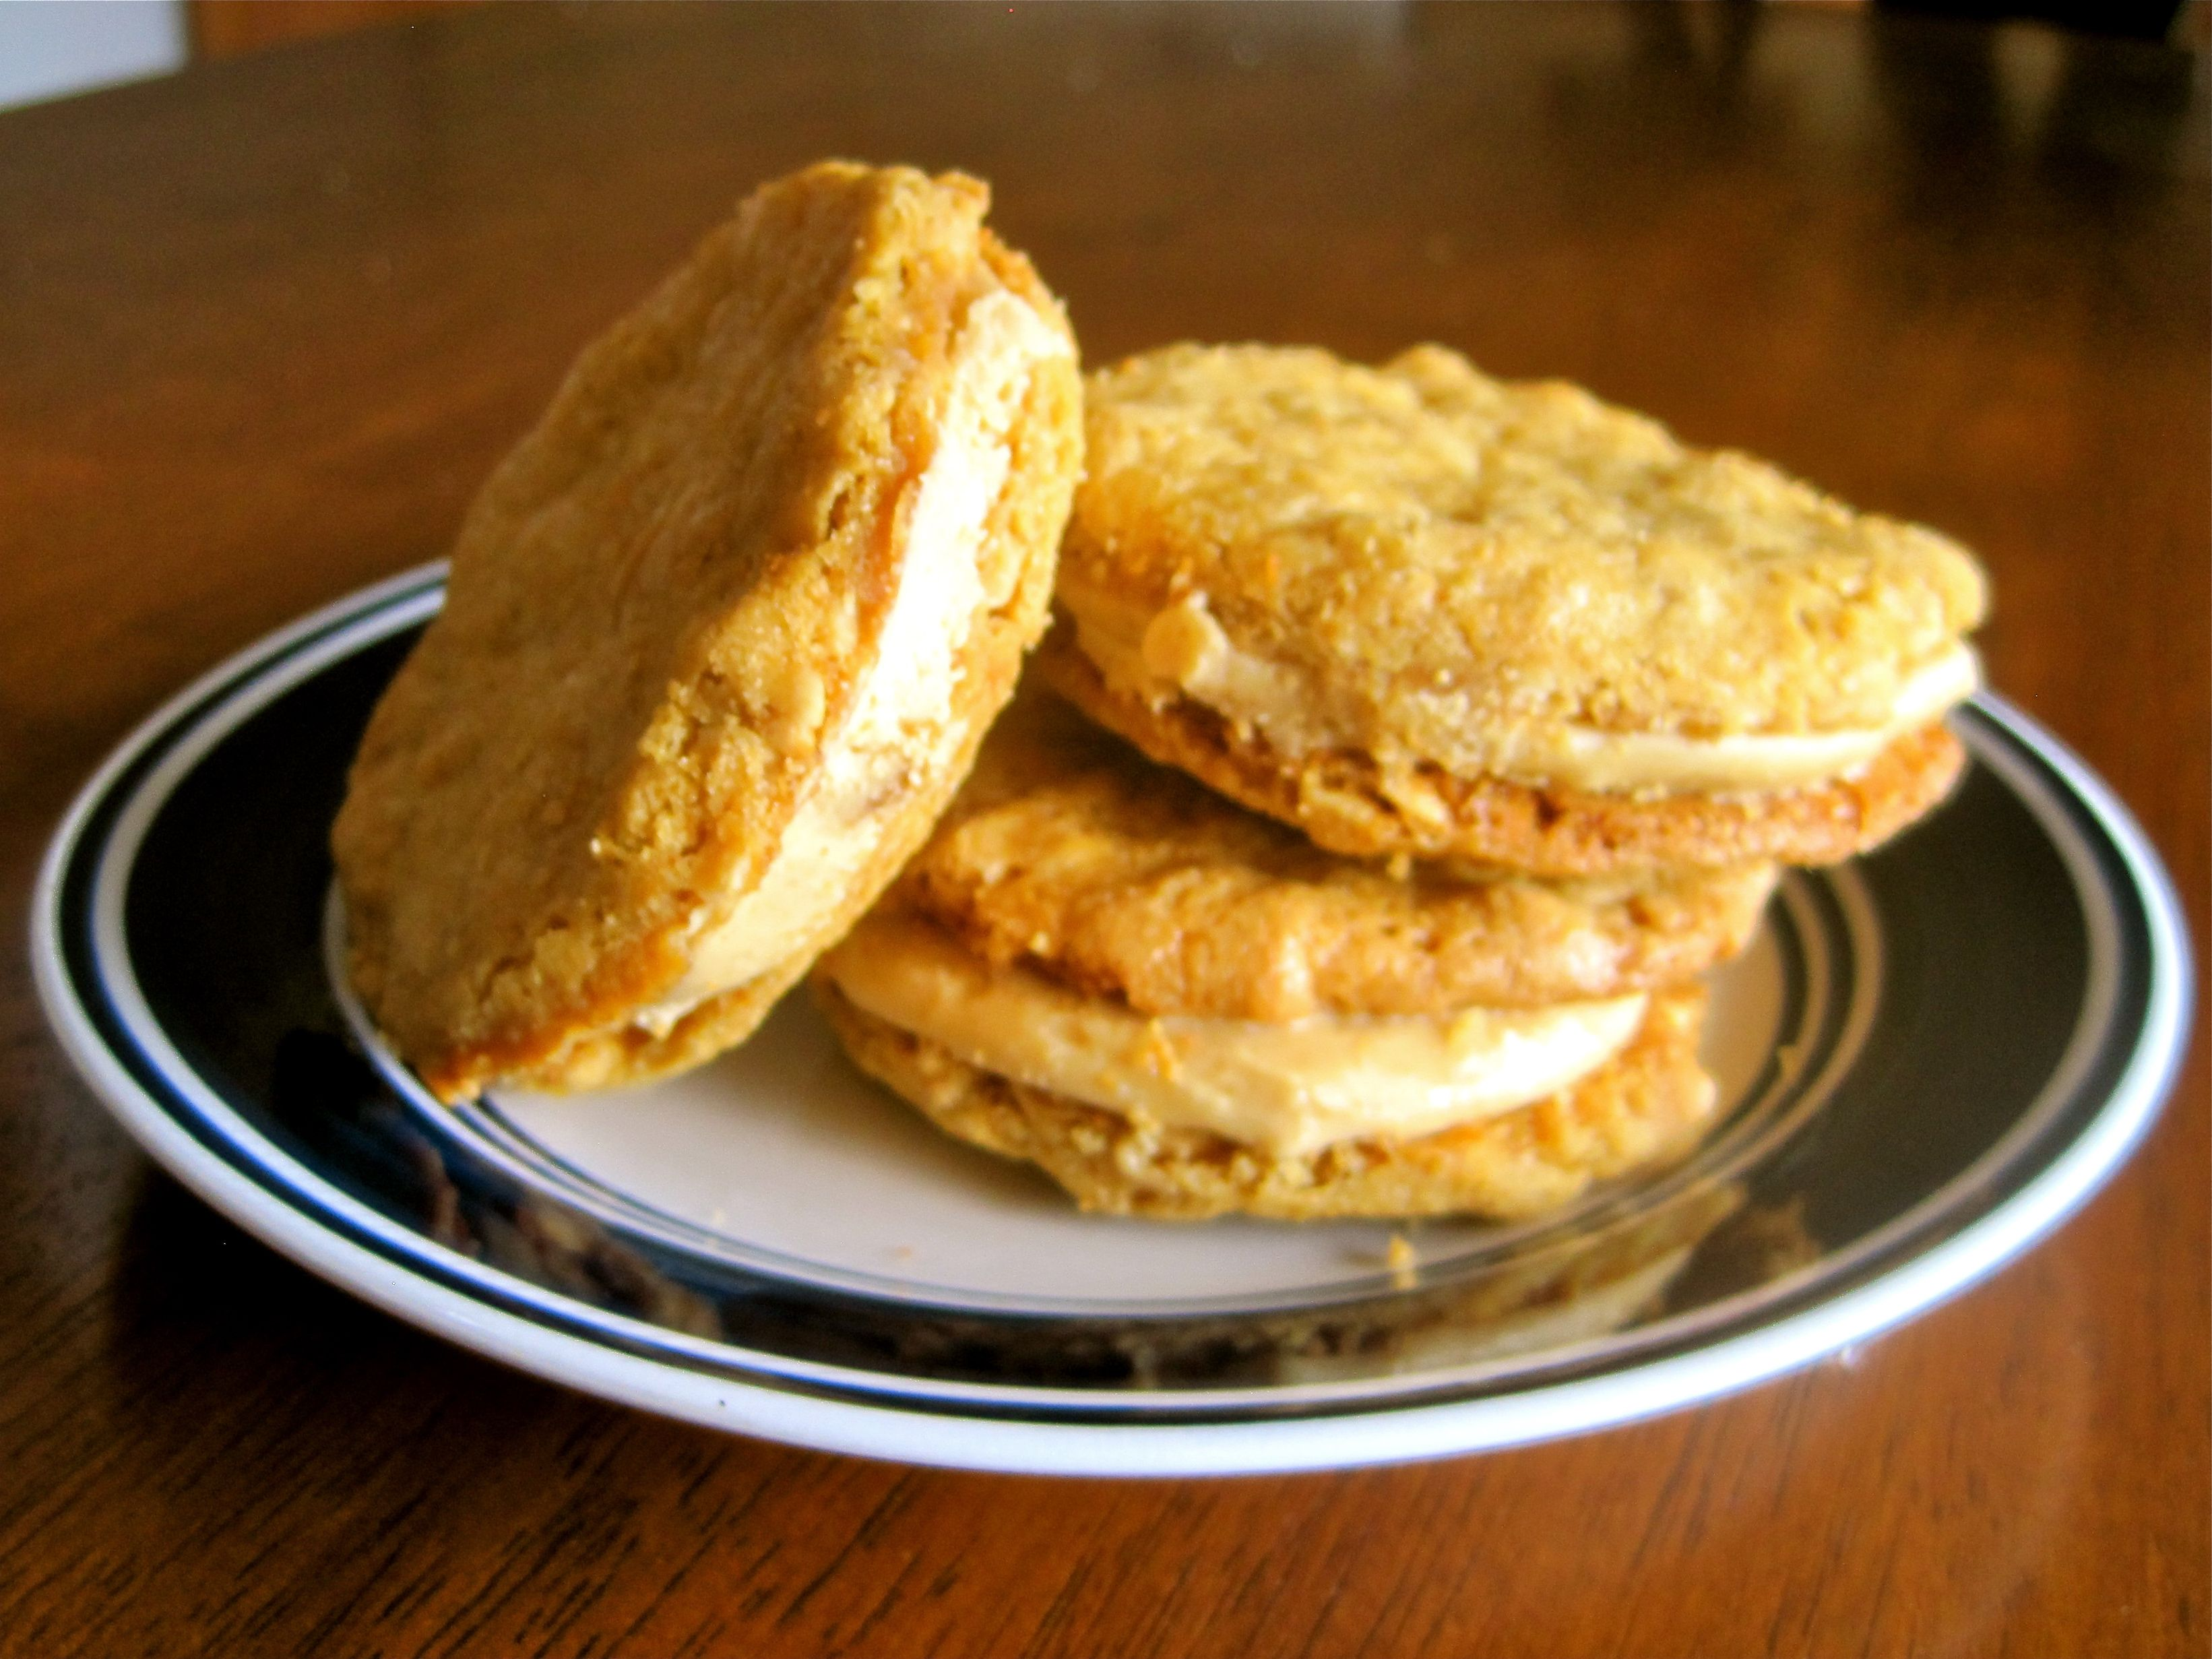 Peanut Butter Sandwich Cookies  - Delicious, Crunchy, and Super Peanut Buttery!